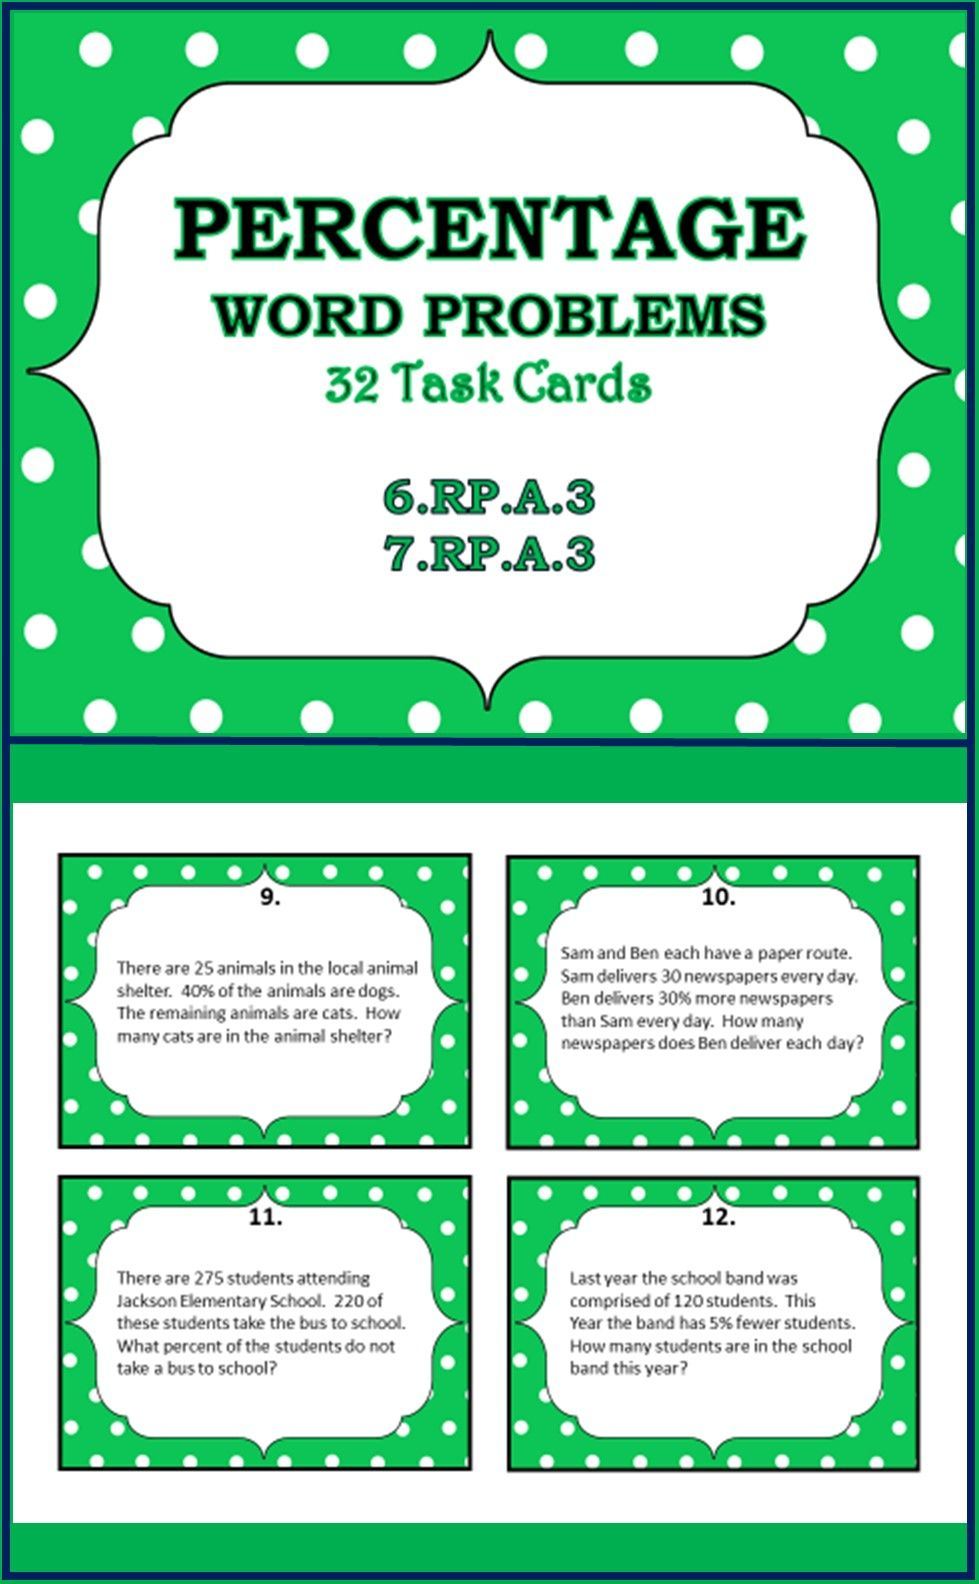 medium resolution of Calculating Percents - Word Problem Task Cards   Word problems